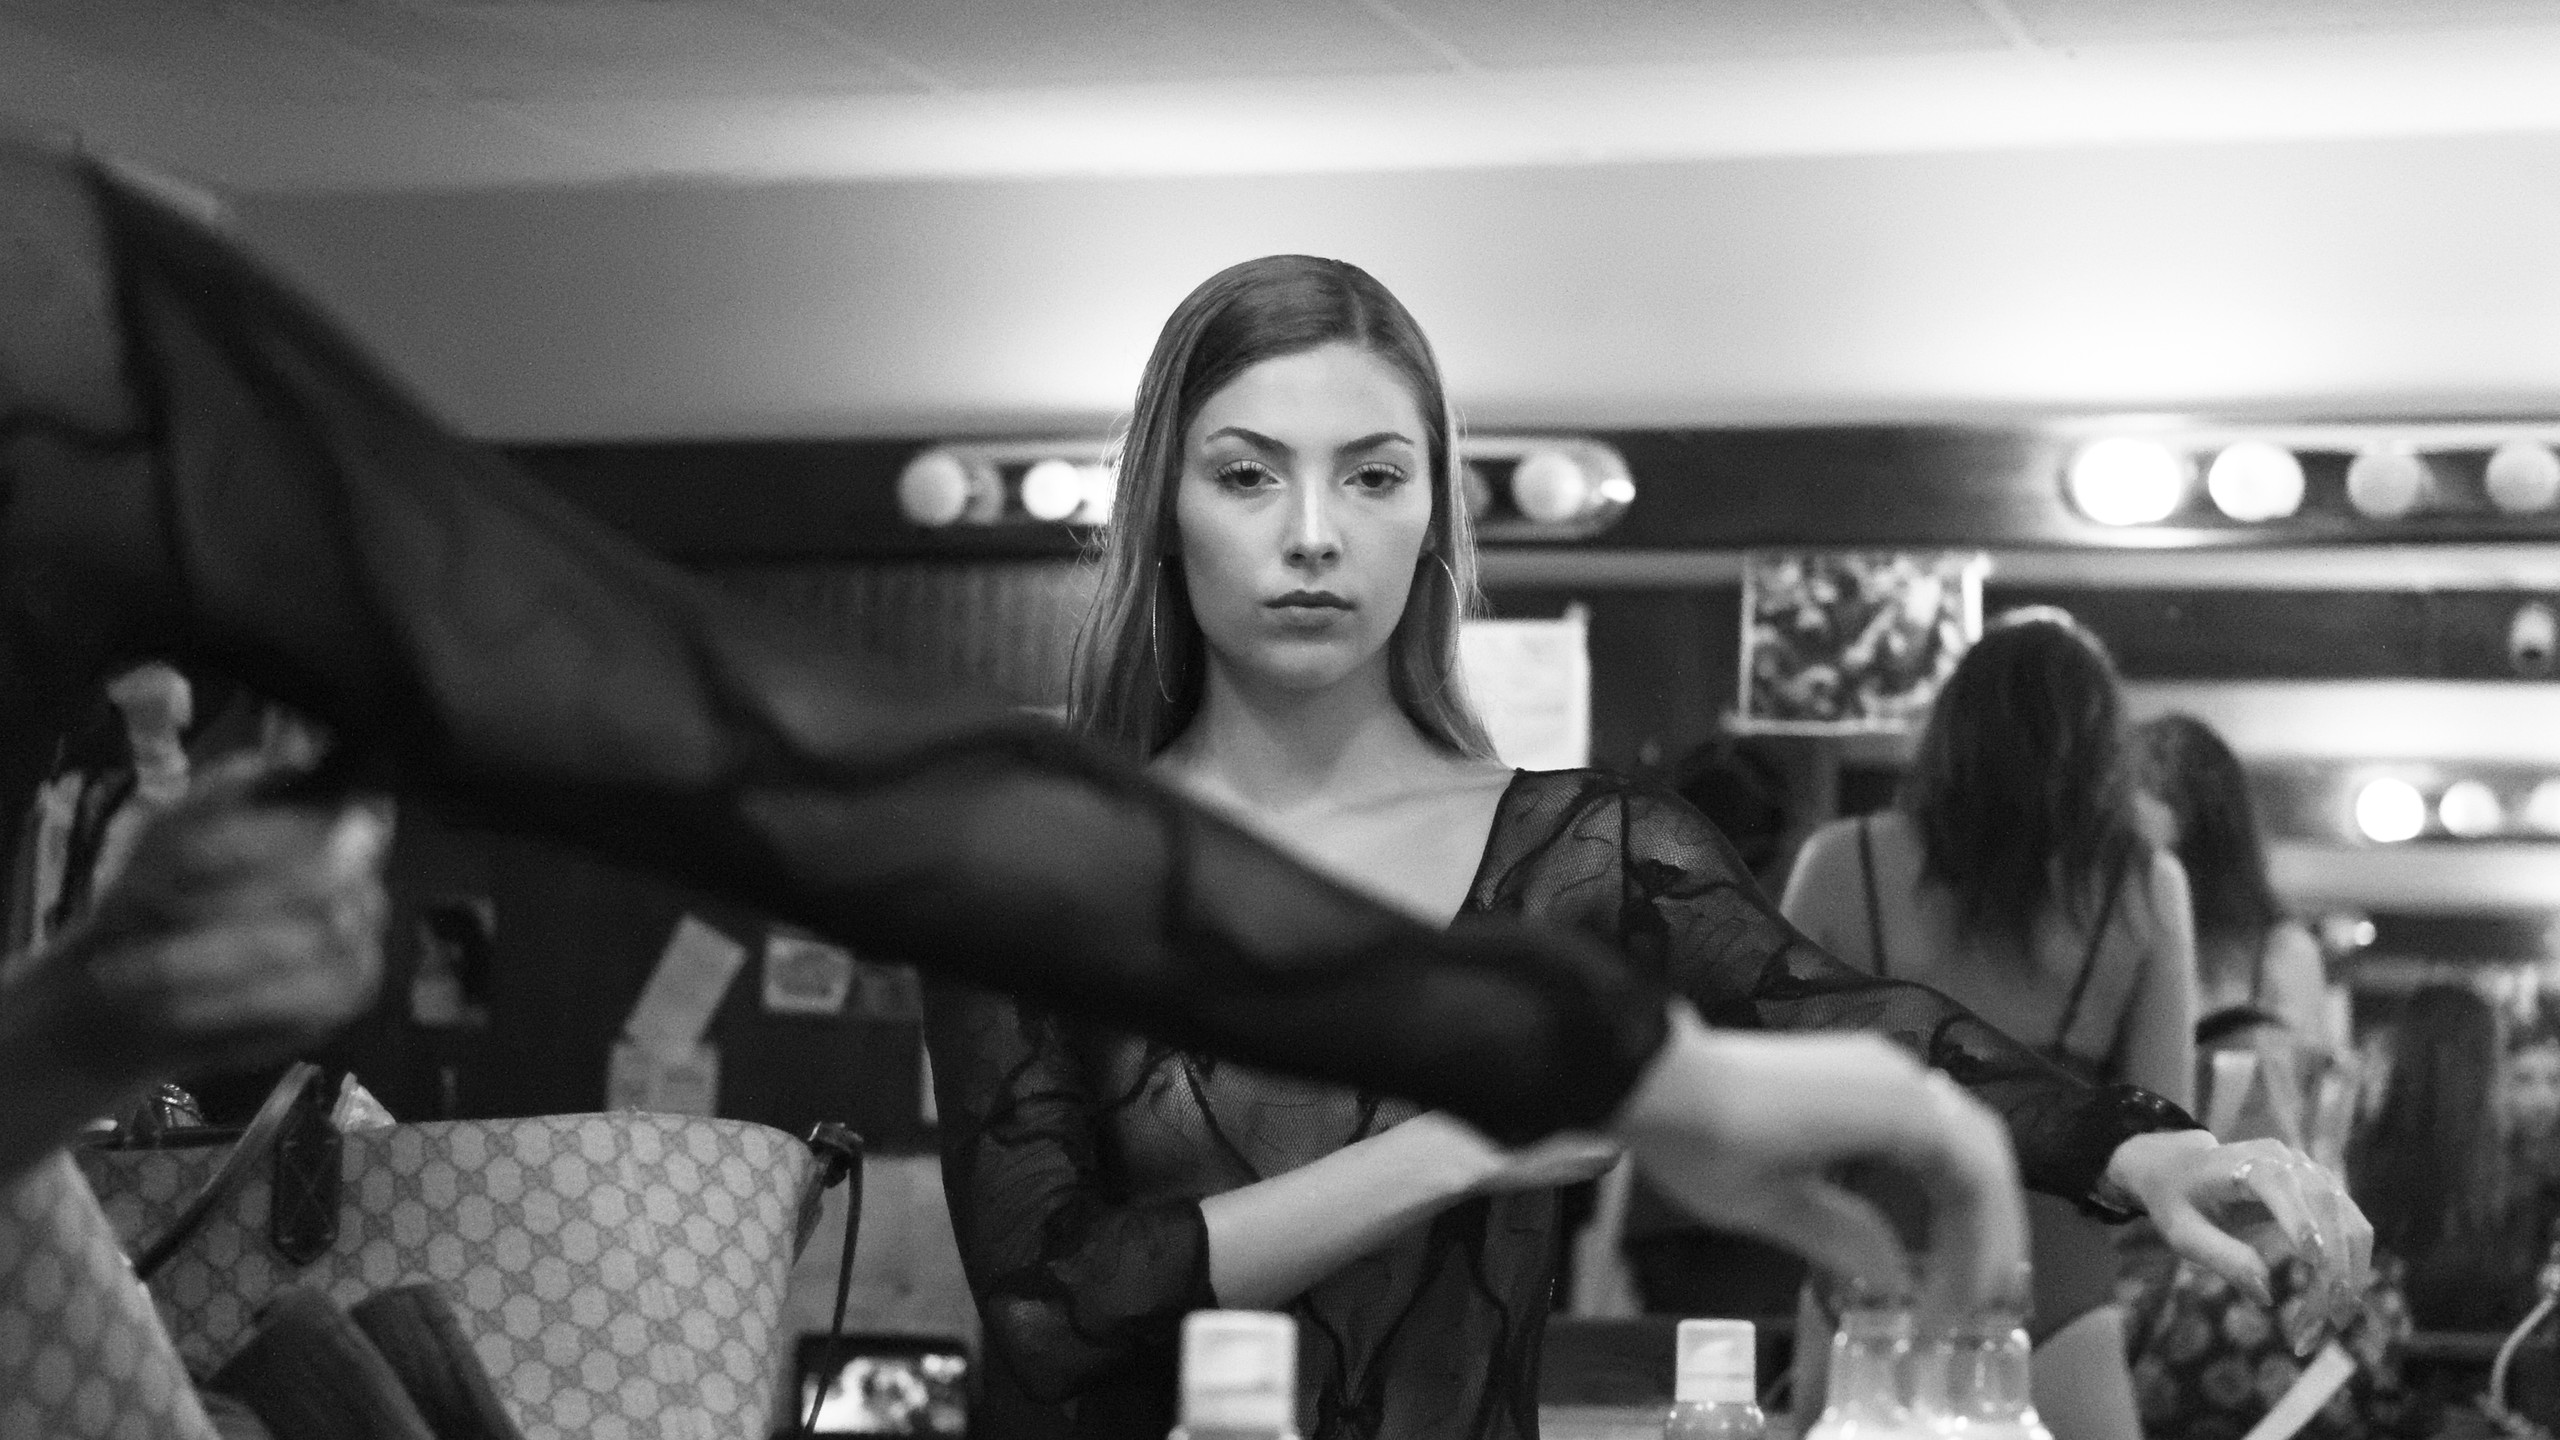 Adriana changes into her work clothes backstage.